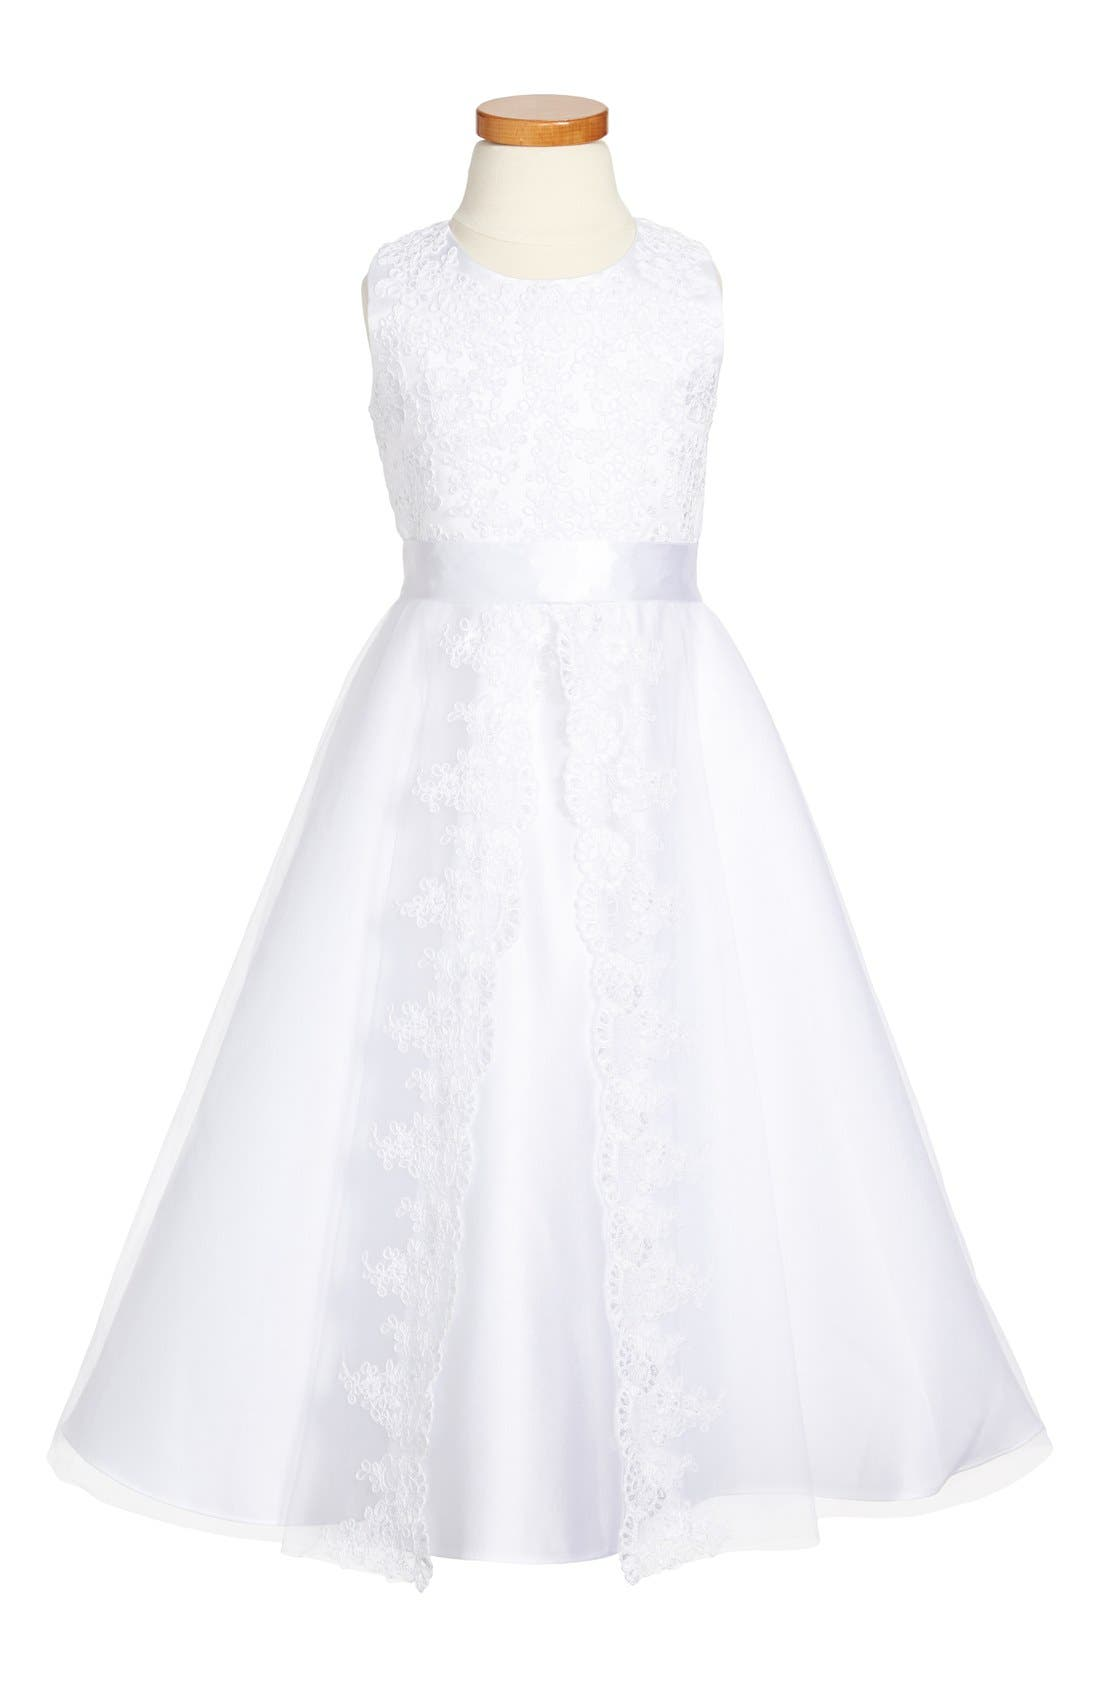 Alternate Image 1 Selected - Joan Calabrese for Mon Cheri First Communion Dress (Little Girls & Big Girls)